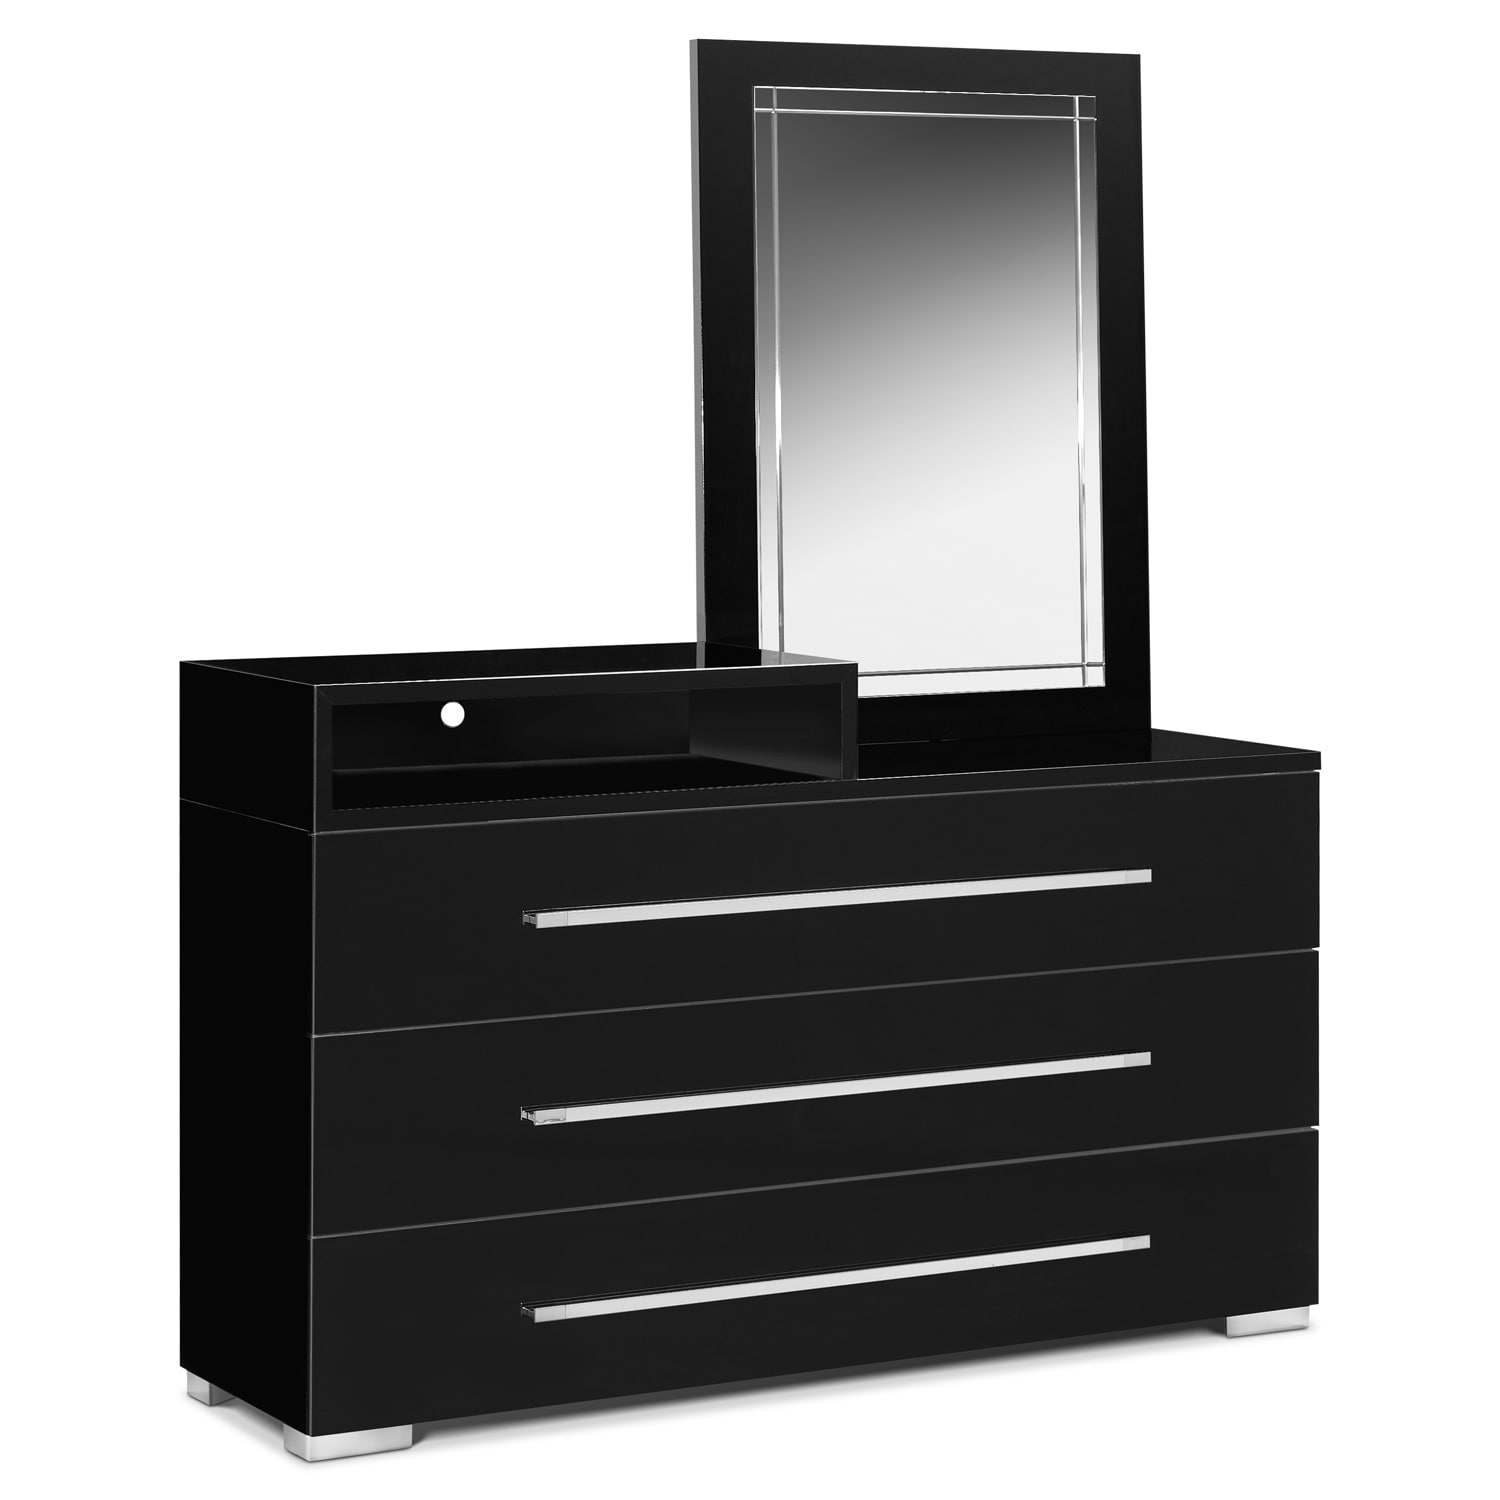 Bedroom Furniture - Dimora Dresser with Deck and Mirror - Black